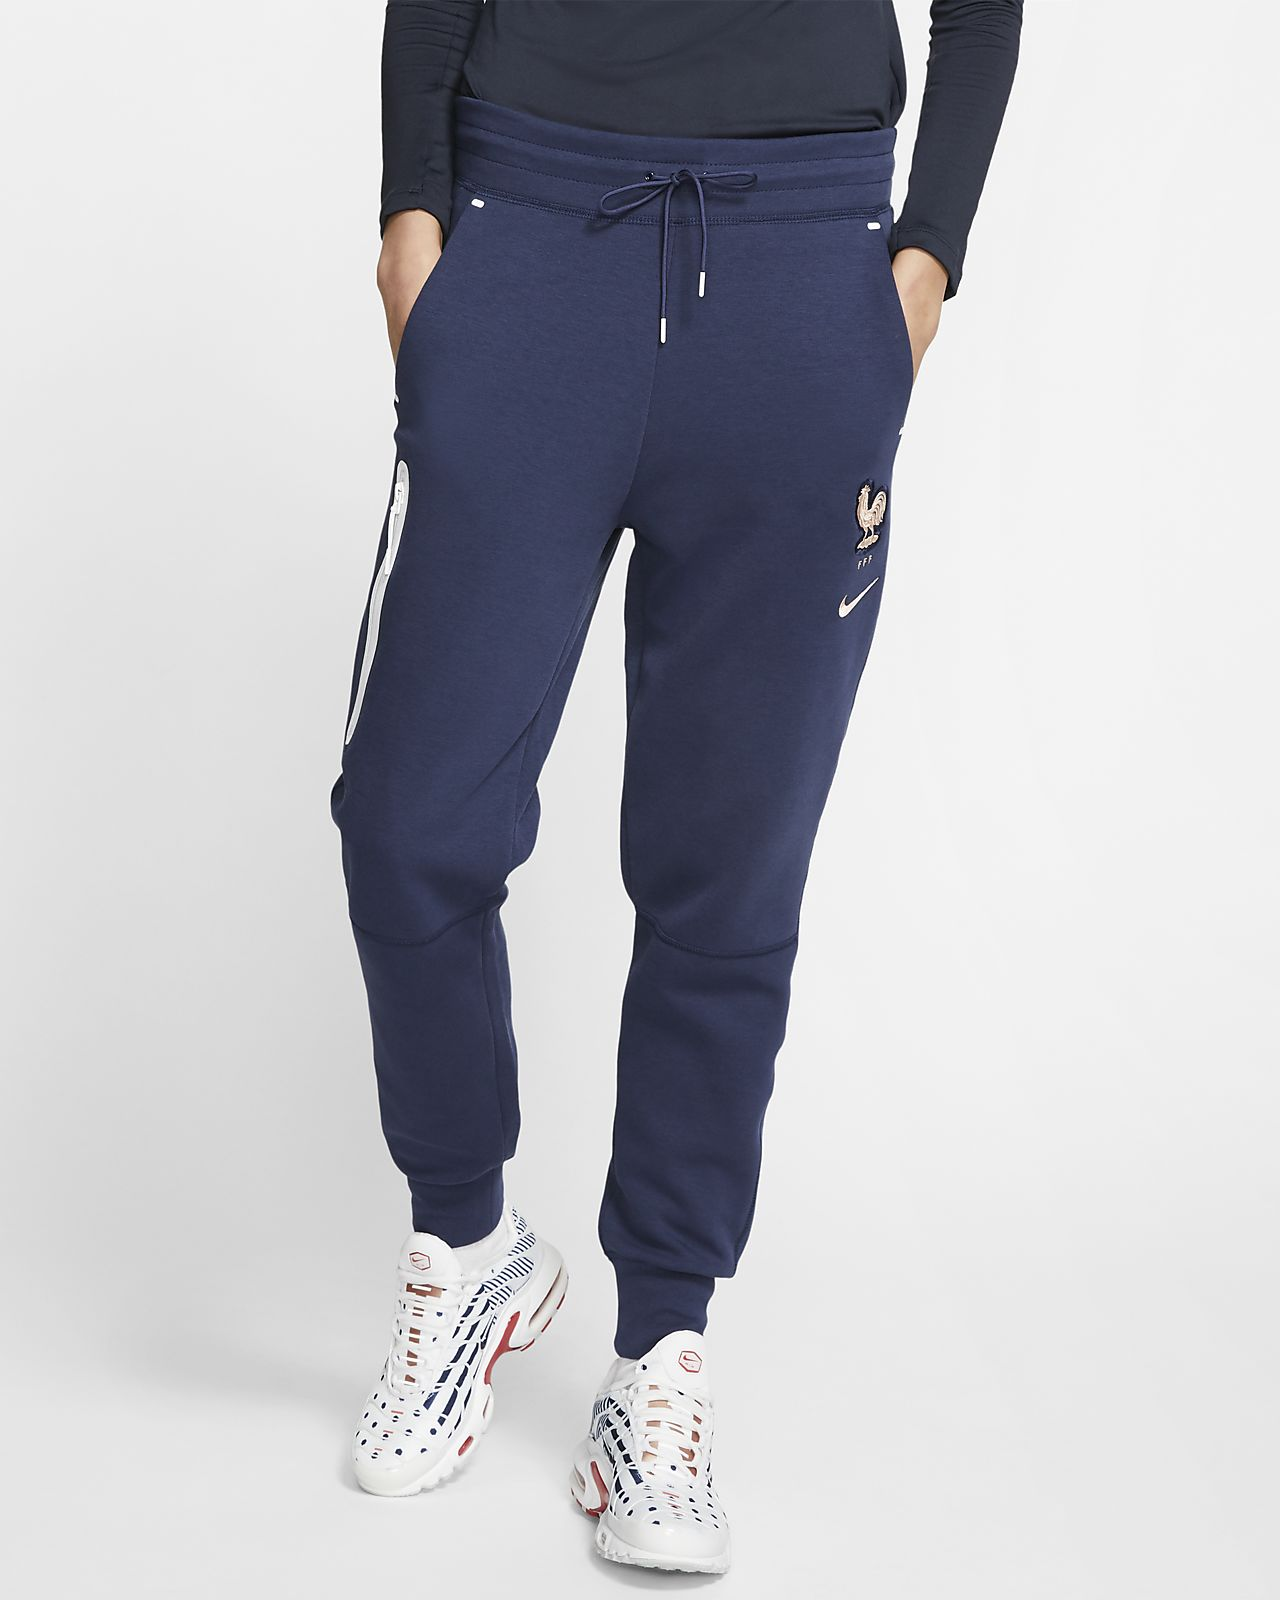 Pantaloni da calcio FFF Tech Fleece - Donna